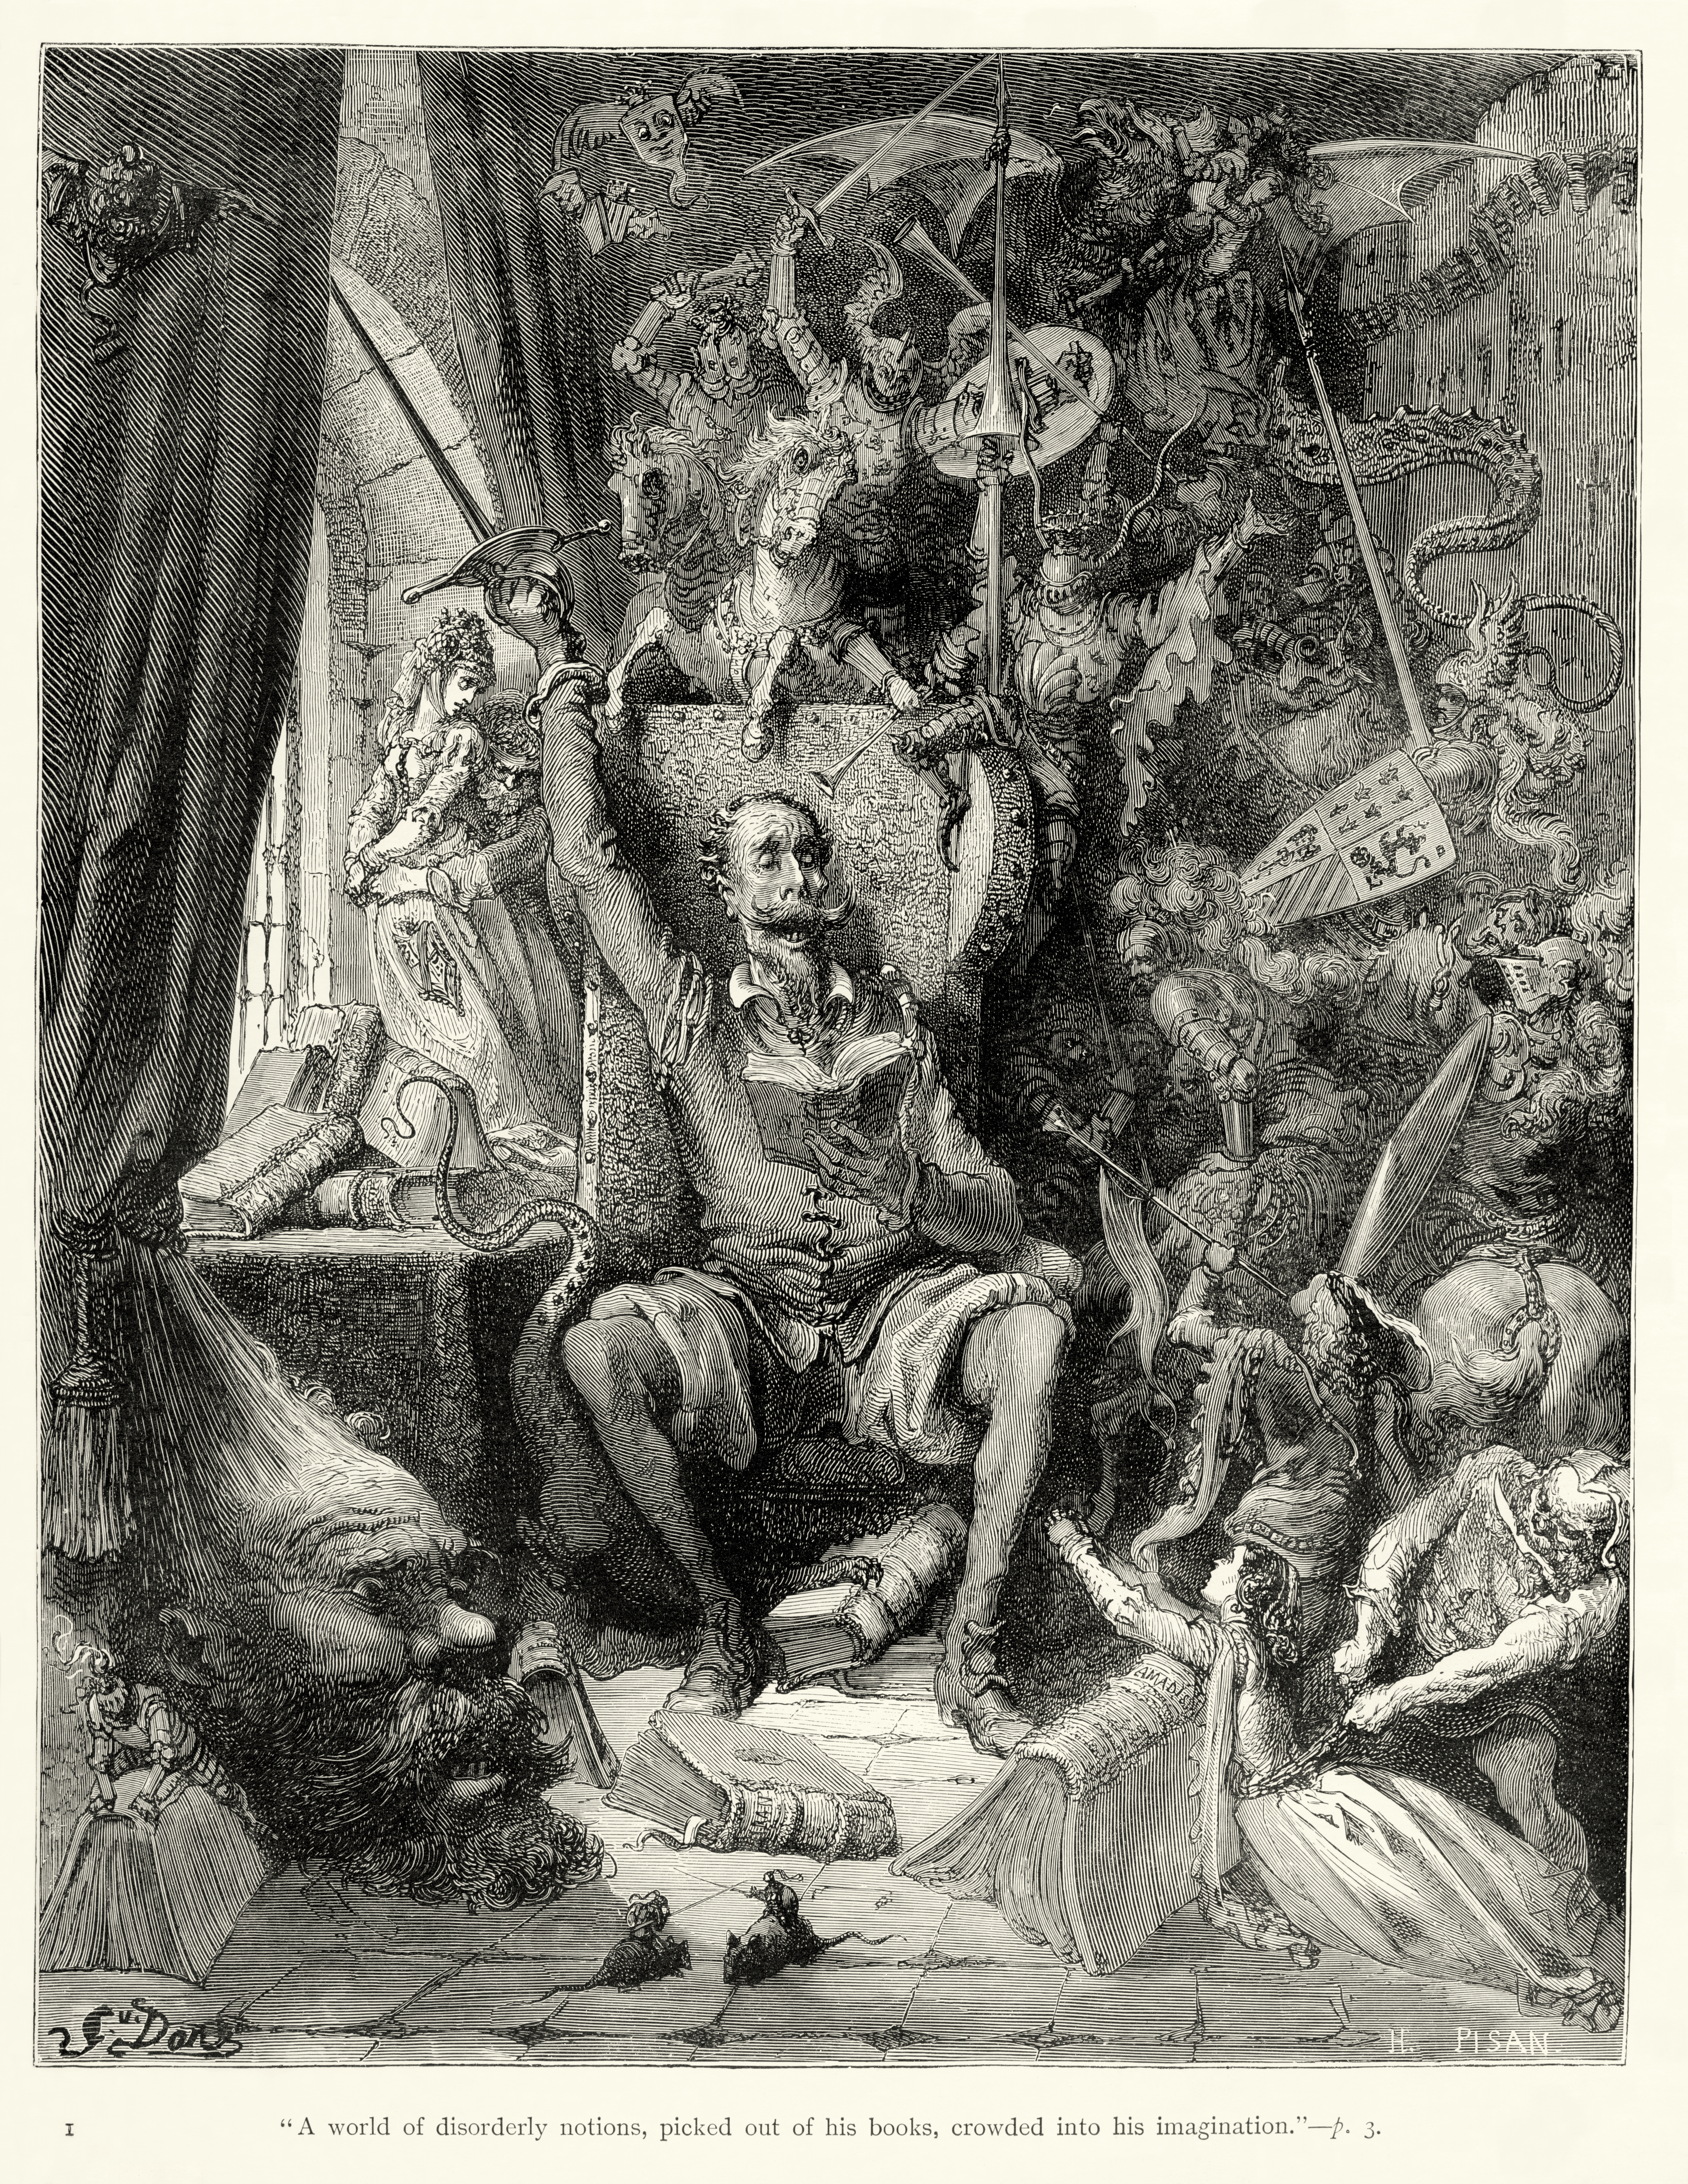 don quixote don quixote goes mad from his reading of books of chivalry engraving by gustave doratildecopy